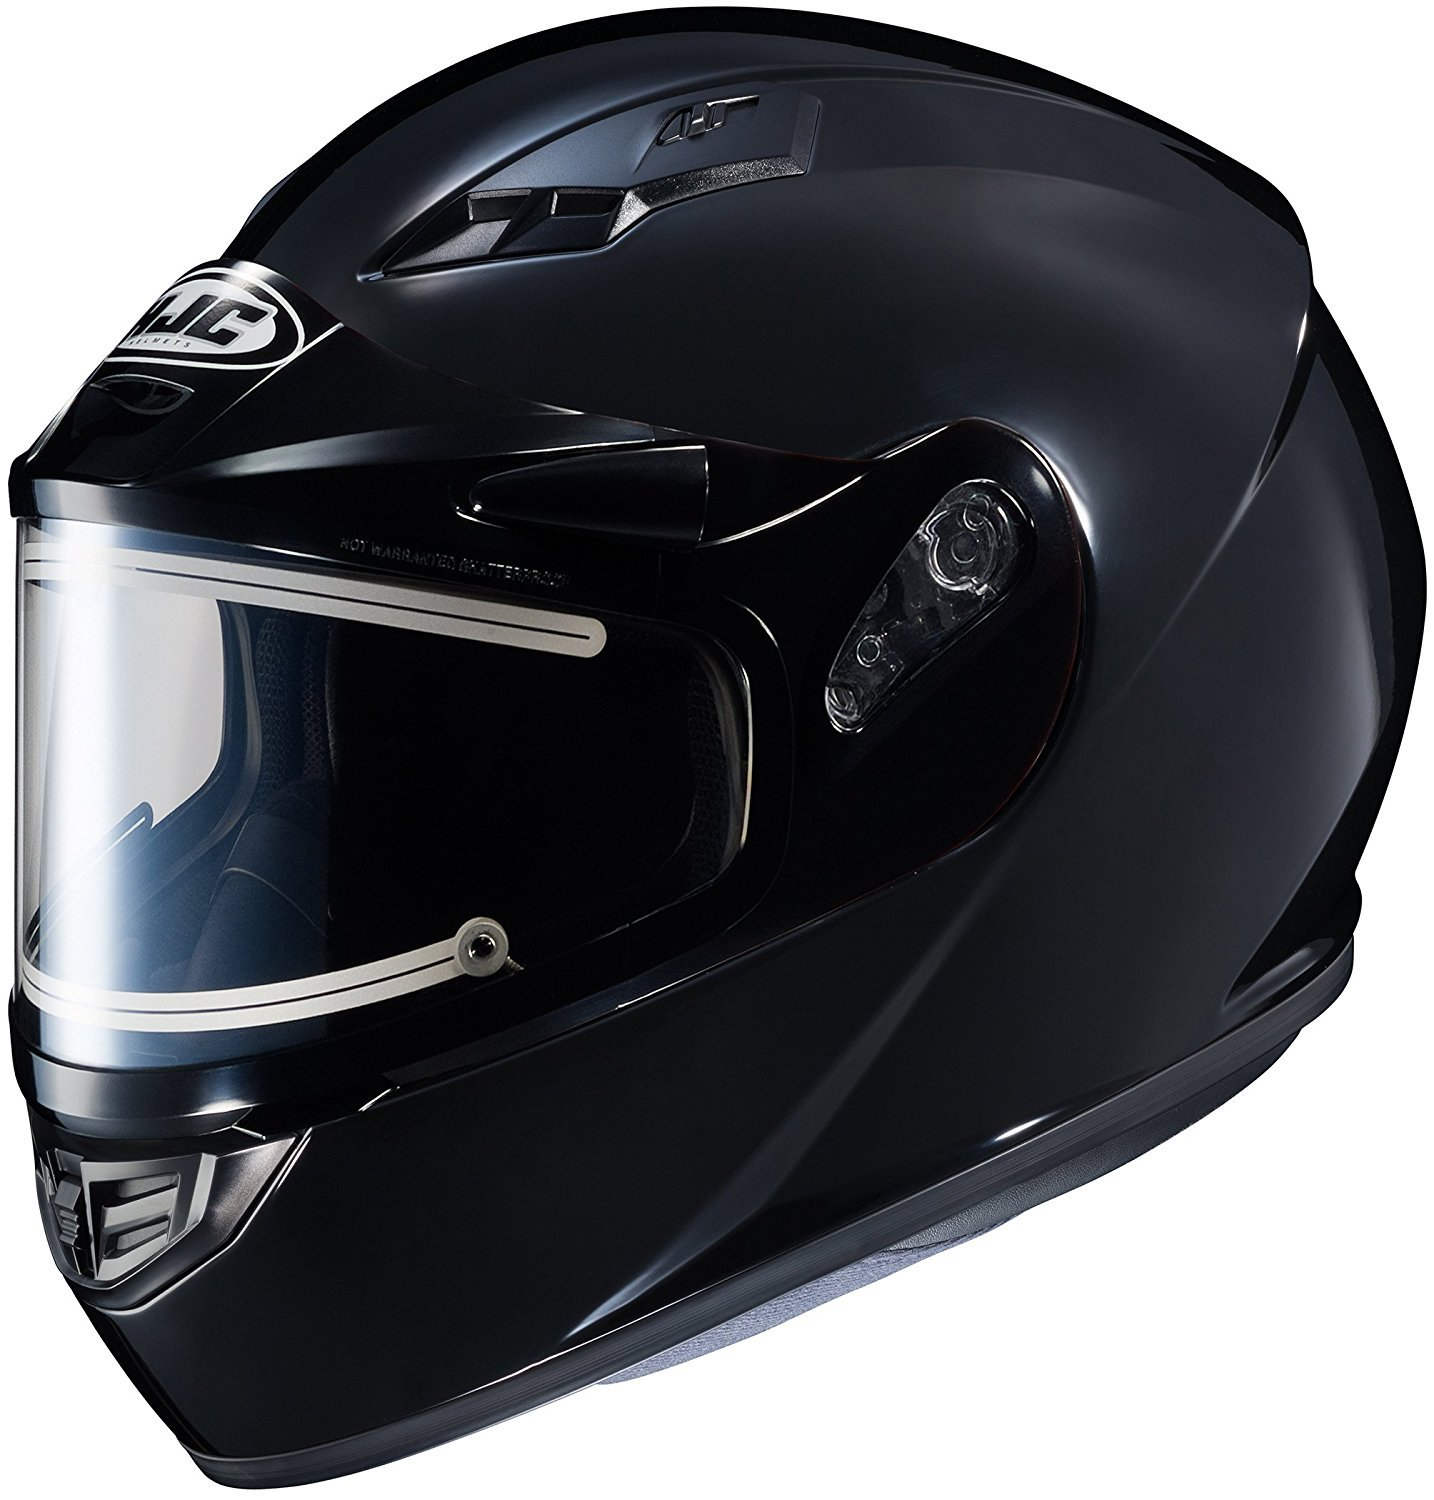 HJC Helmets CS-R3 Solid Snow Helmet with Electric Shield (Solid Black, XX-Large) XF-10